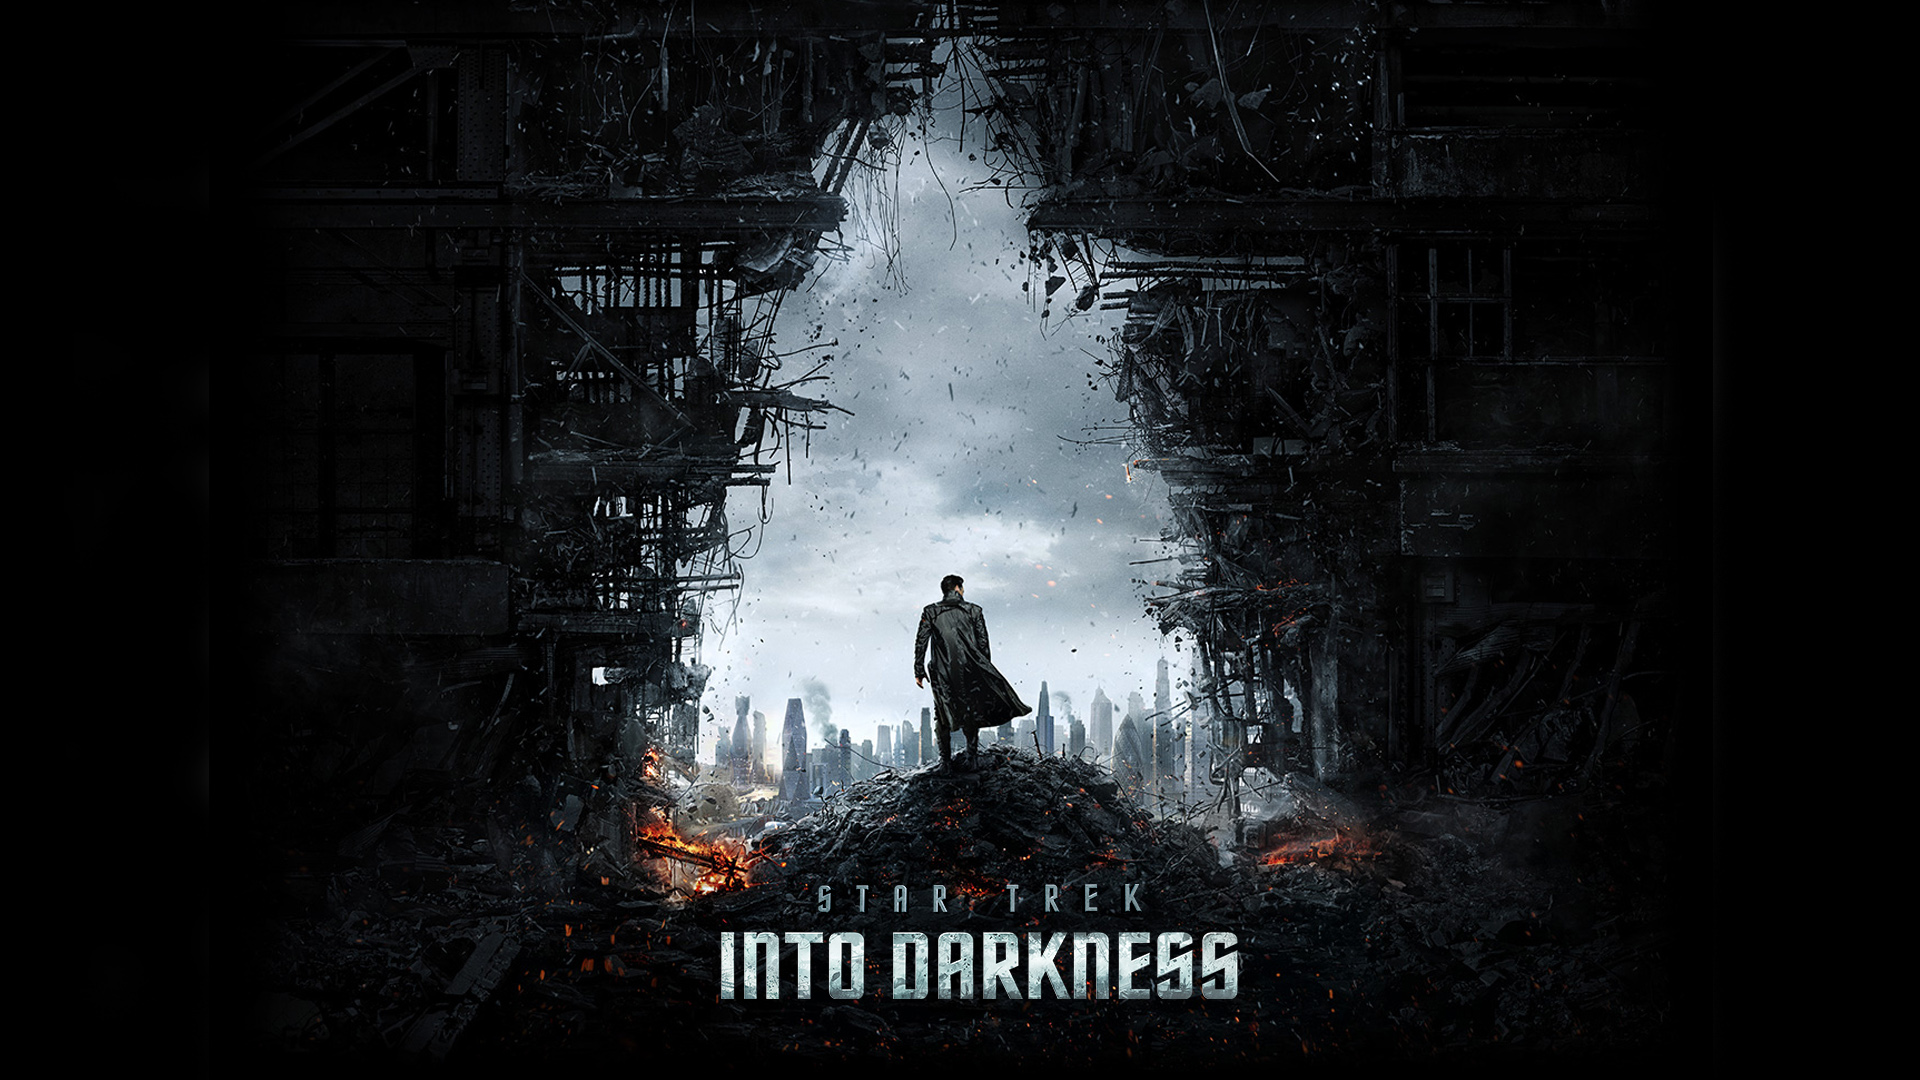 Benedict Cumberbatch, Zoe Saldana, Chris Pine in Star Trek Into Darkness